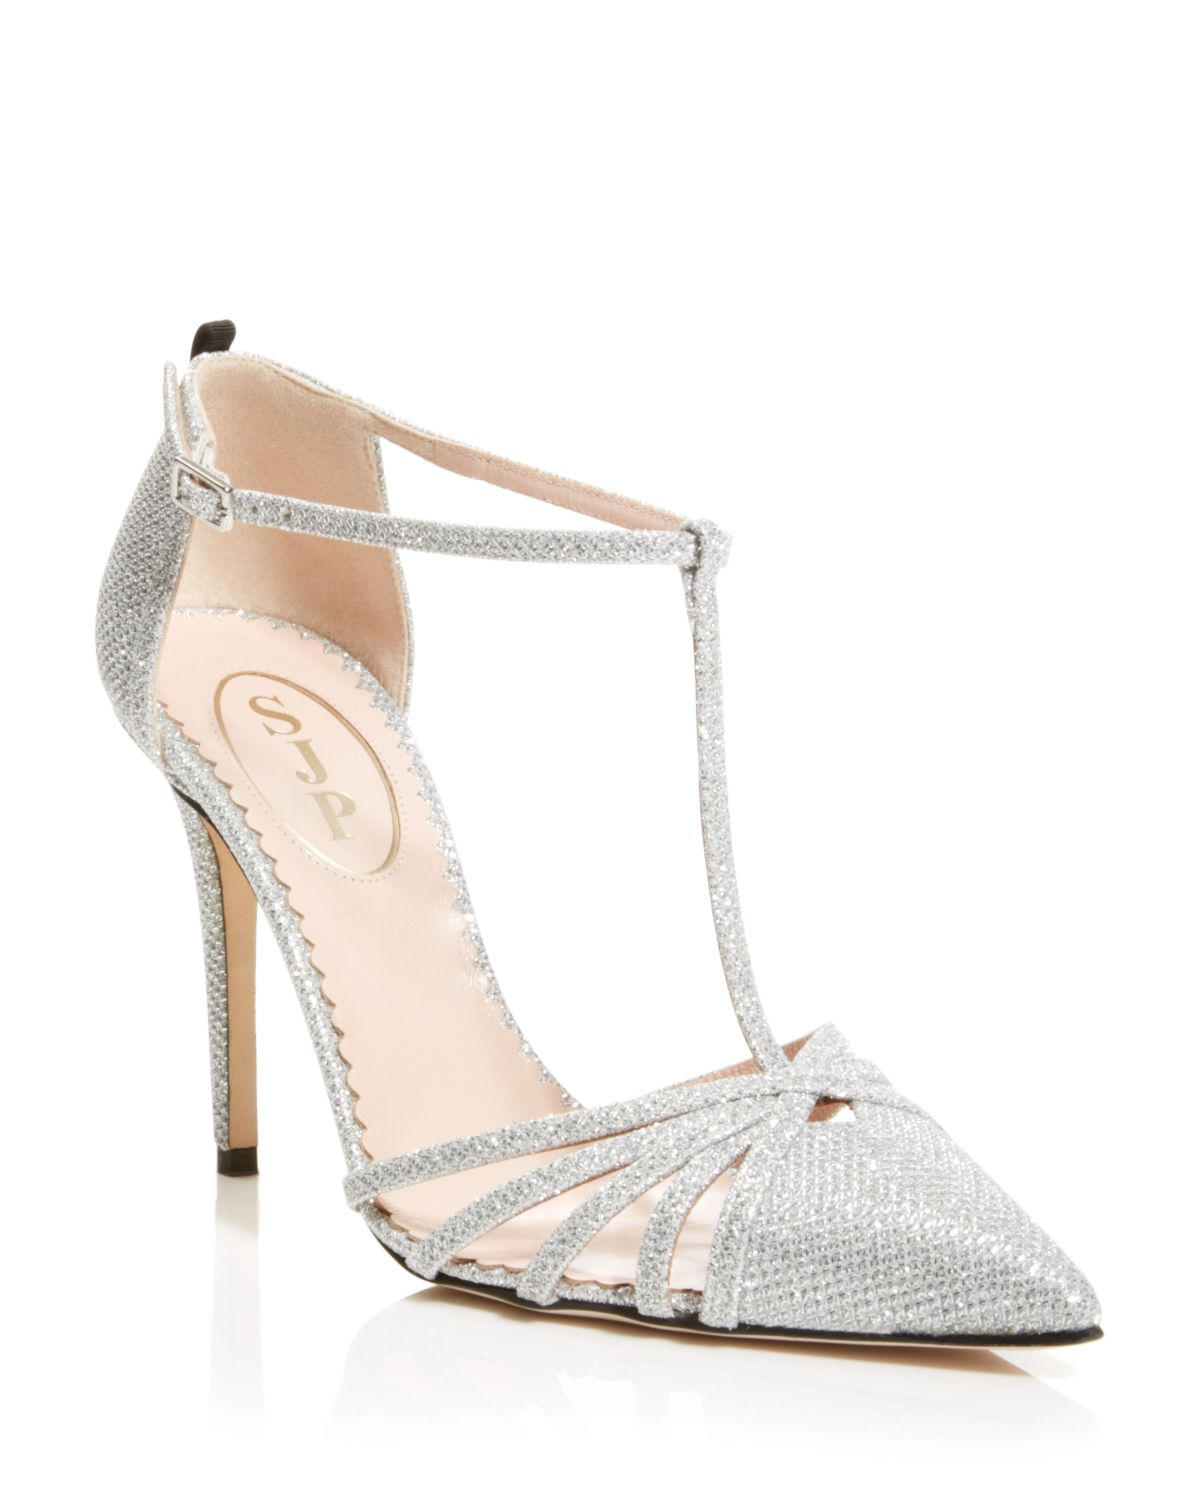 2b069ea3c2f SJP by Sarah Jessica Parker Carrie Glitter Cage T-strap Pumps in ...